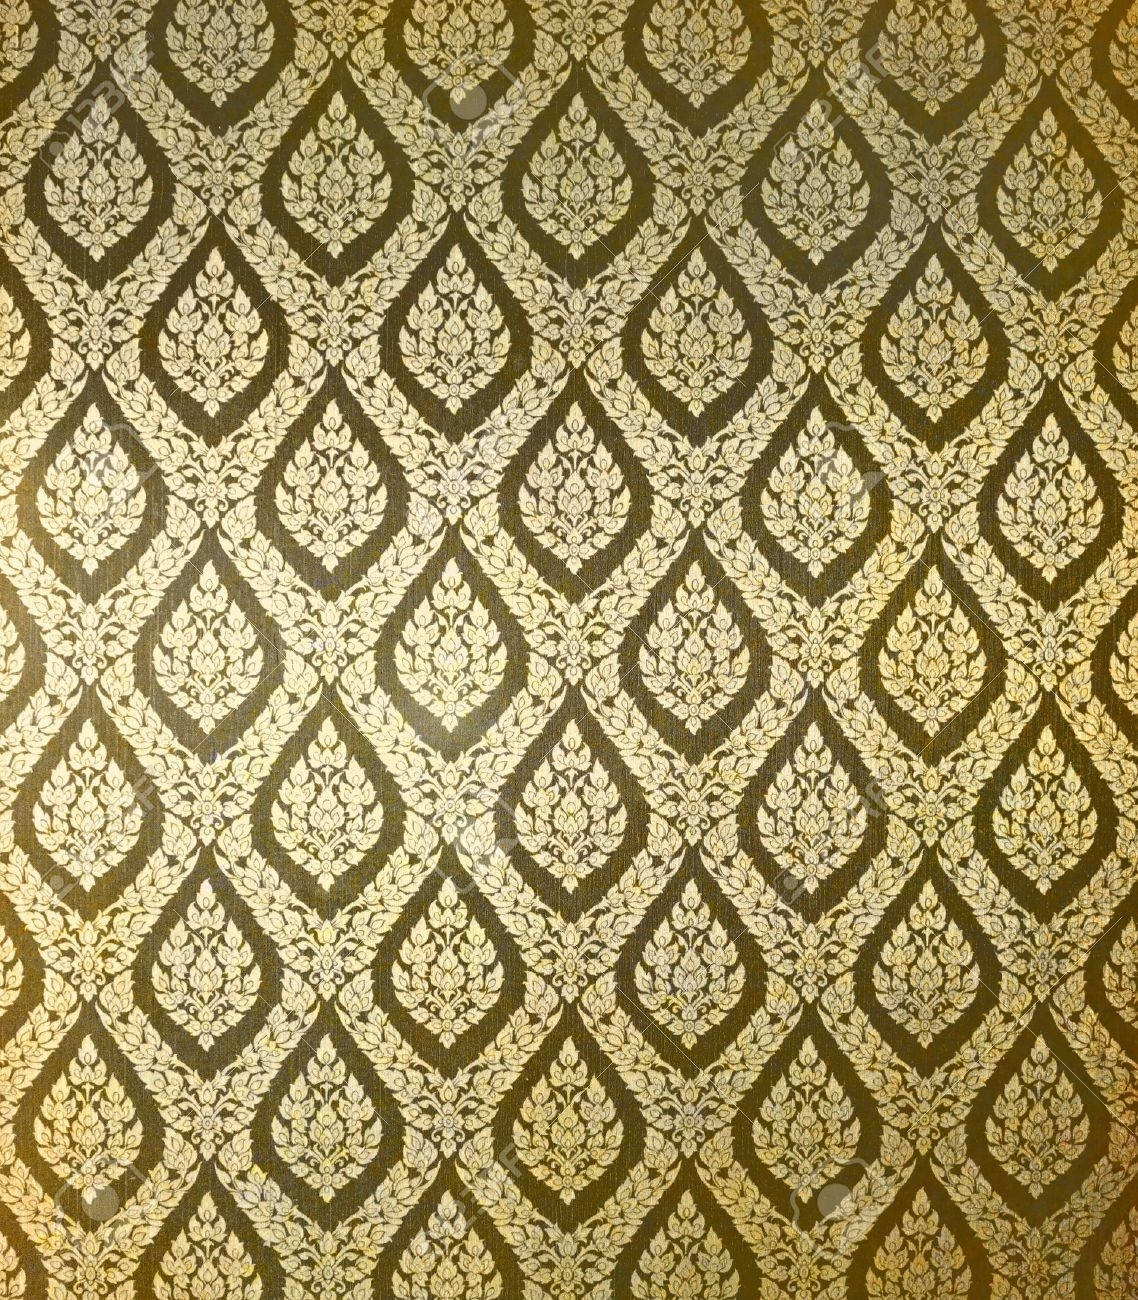 Thai Art Wall Pattern For Background Stock Photo, Picture And Regarding Best And Newest Thai Fabric Wall Art (View 11 of 15)